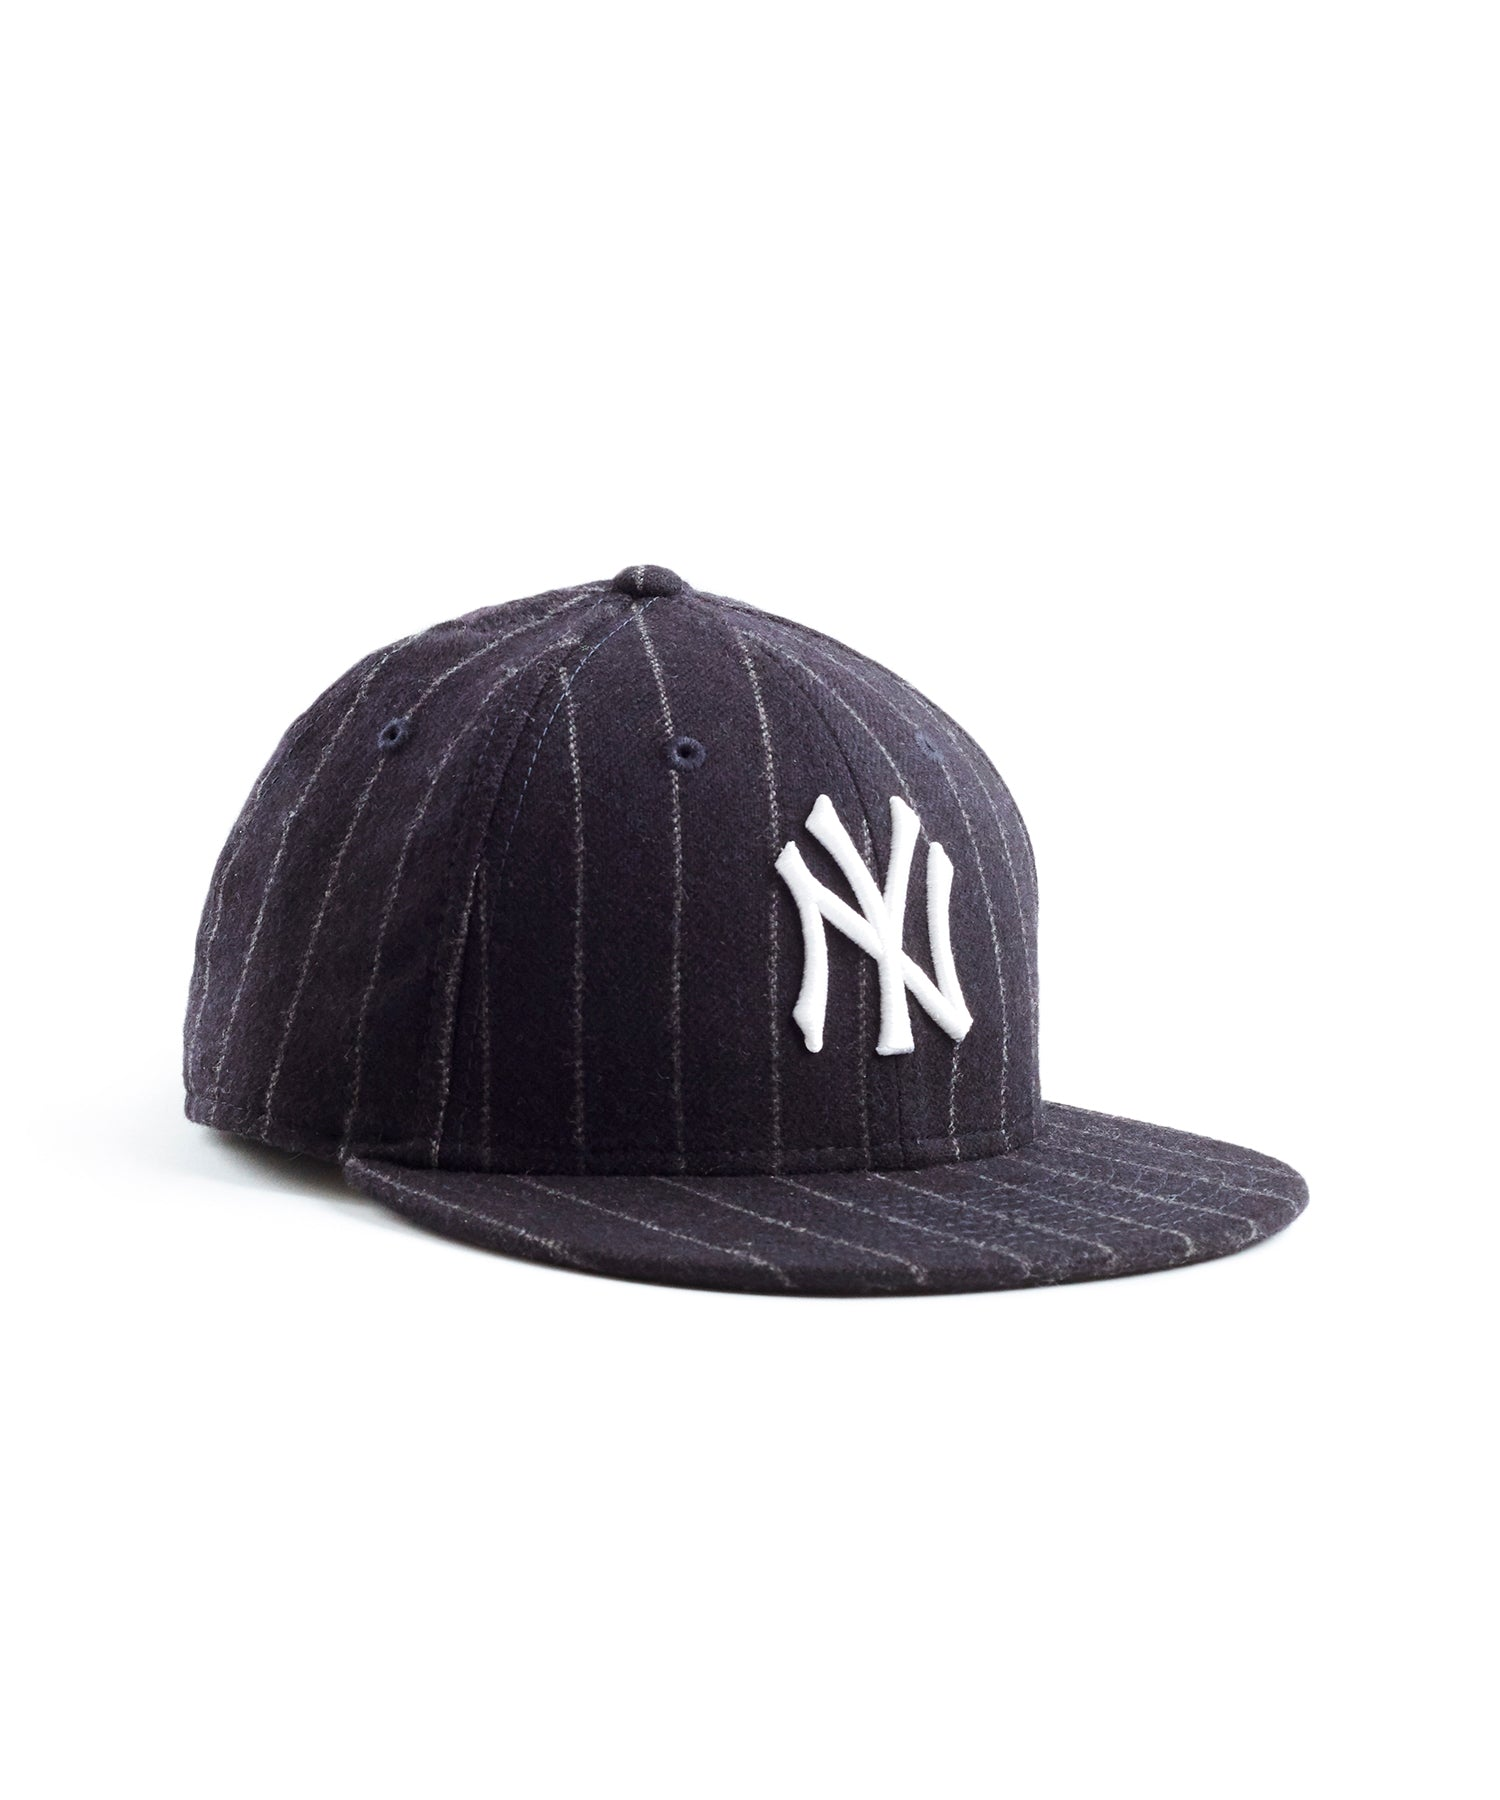 Exclusive New Era New York Yankees Cap in Abraham Moon Navy Wool Chalkstripe